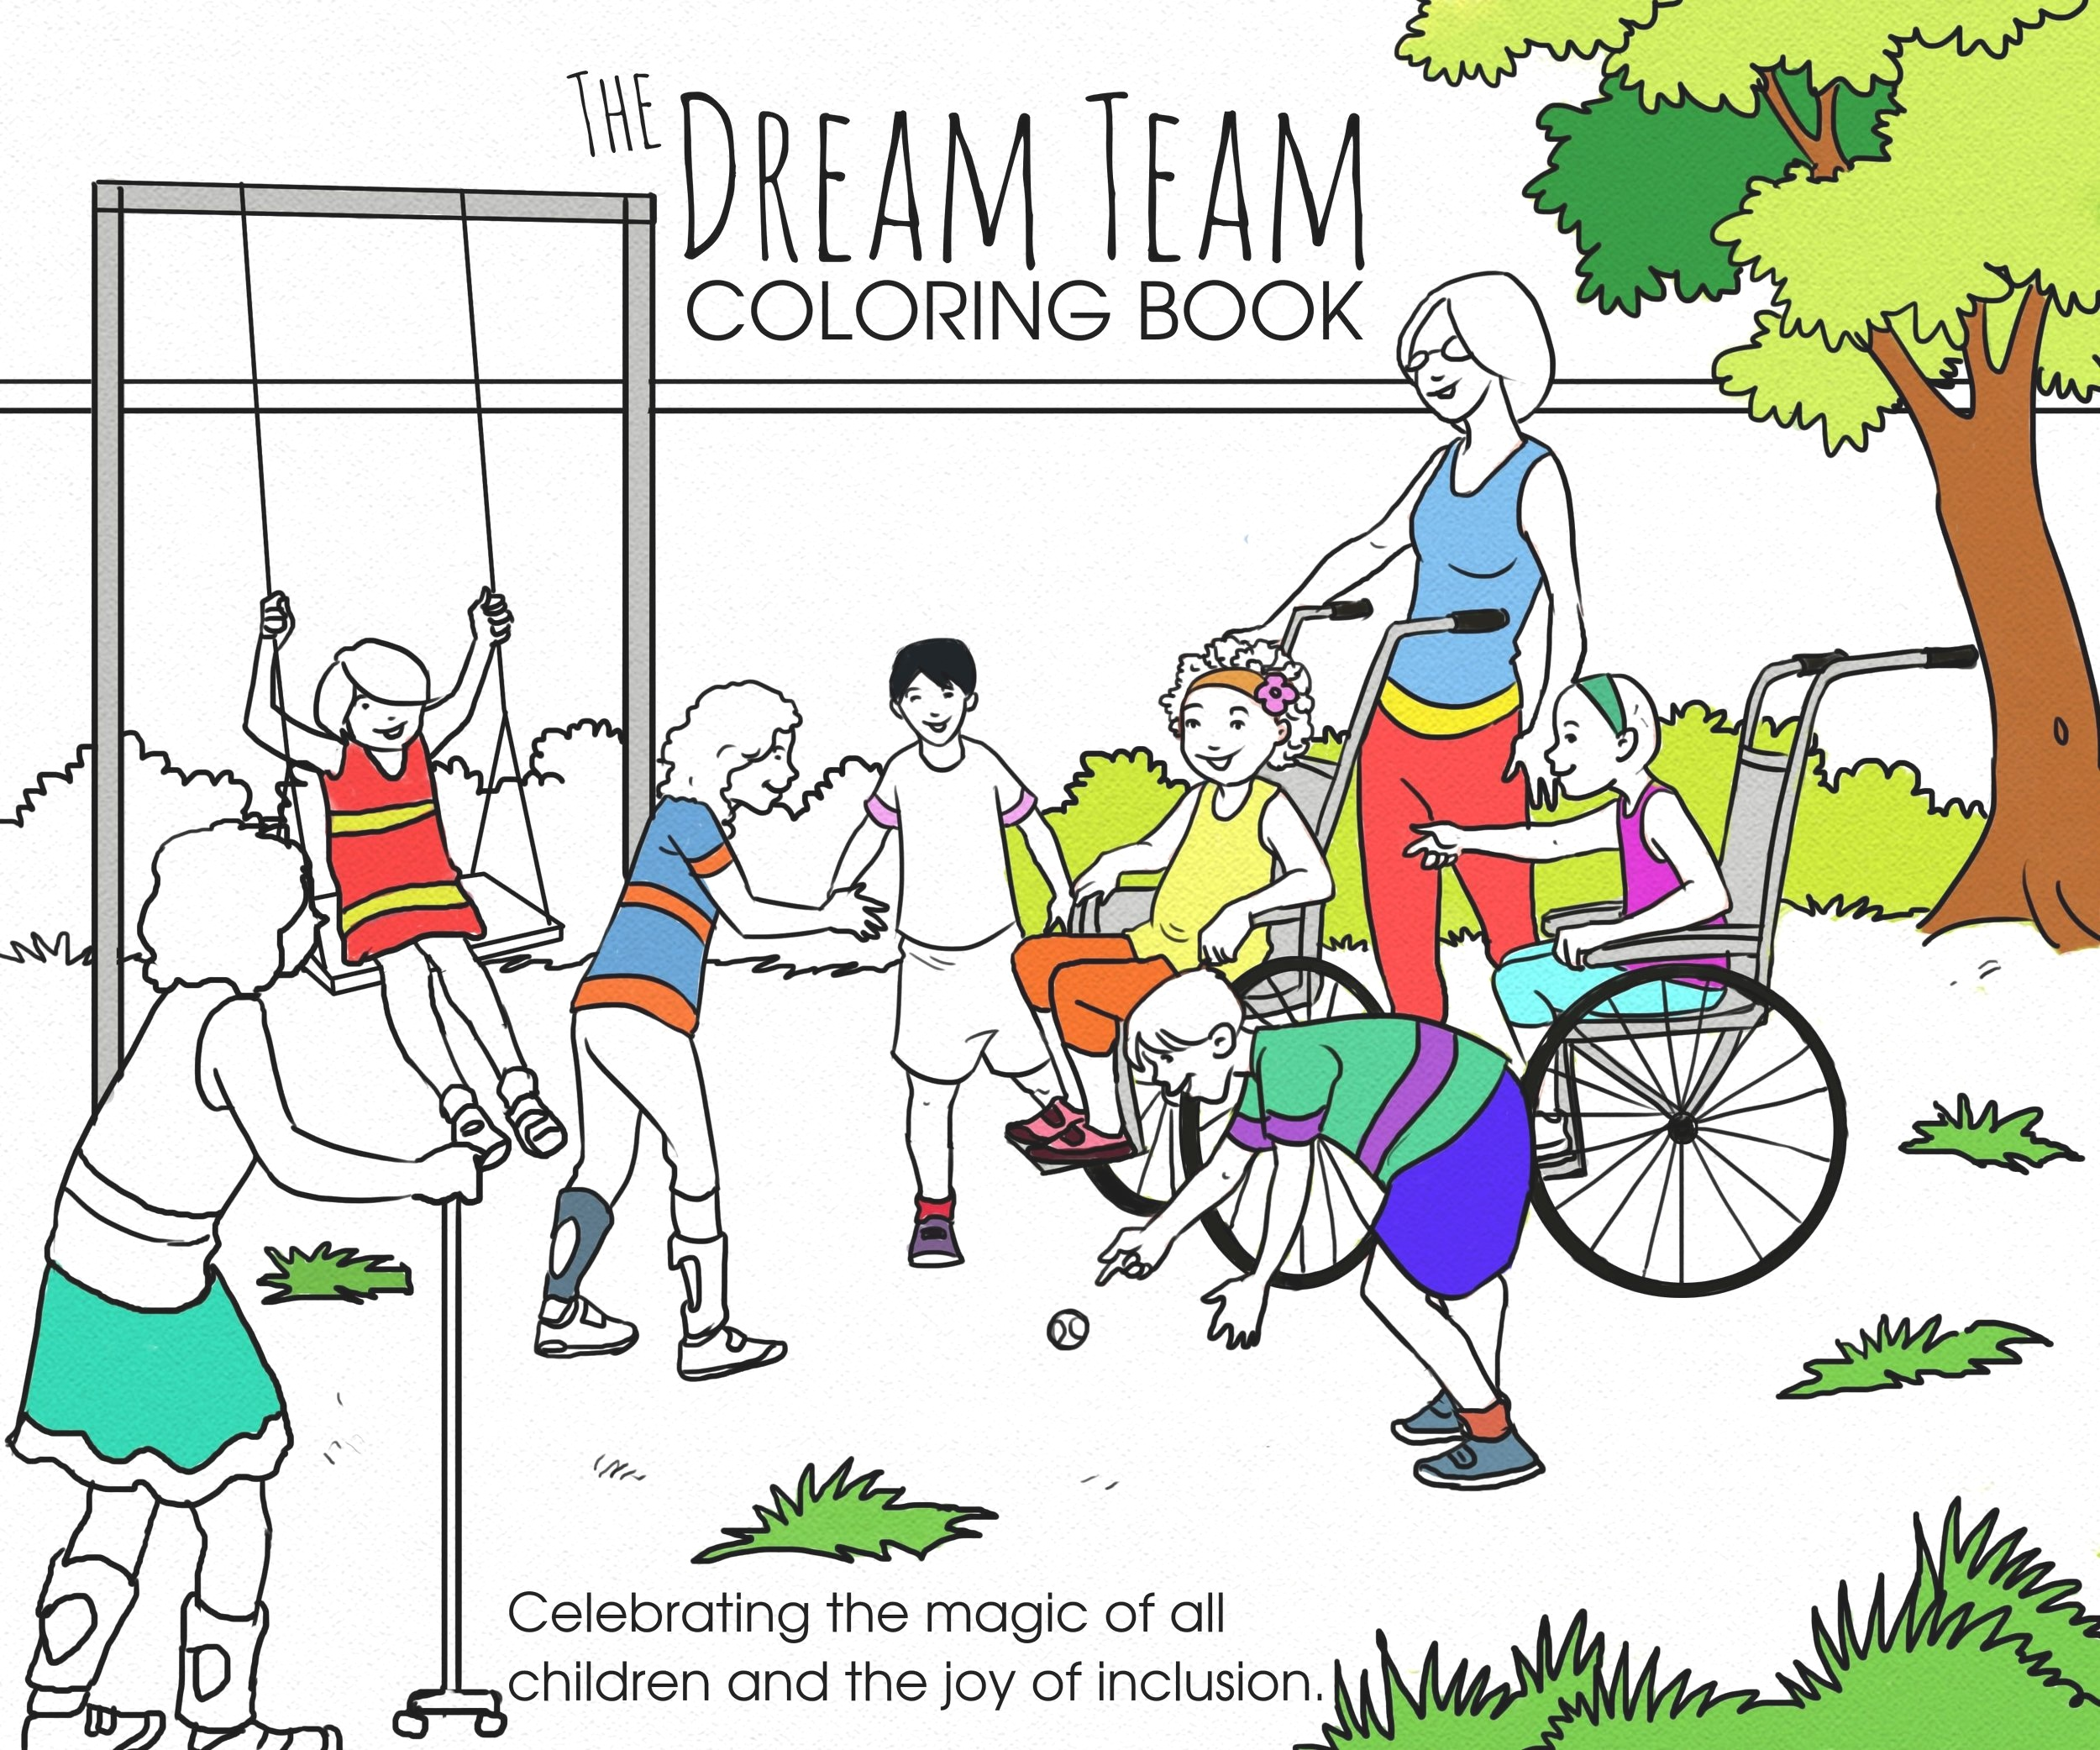 Dream Team Coloring Book – A Dream Come True for One Educator.